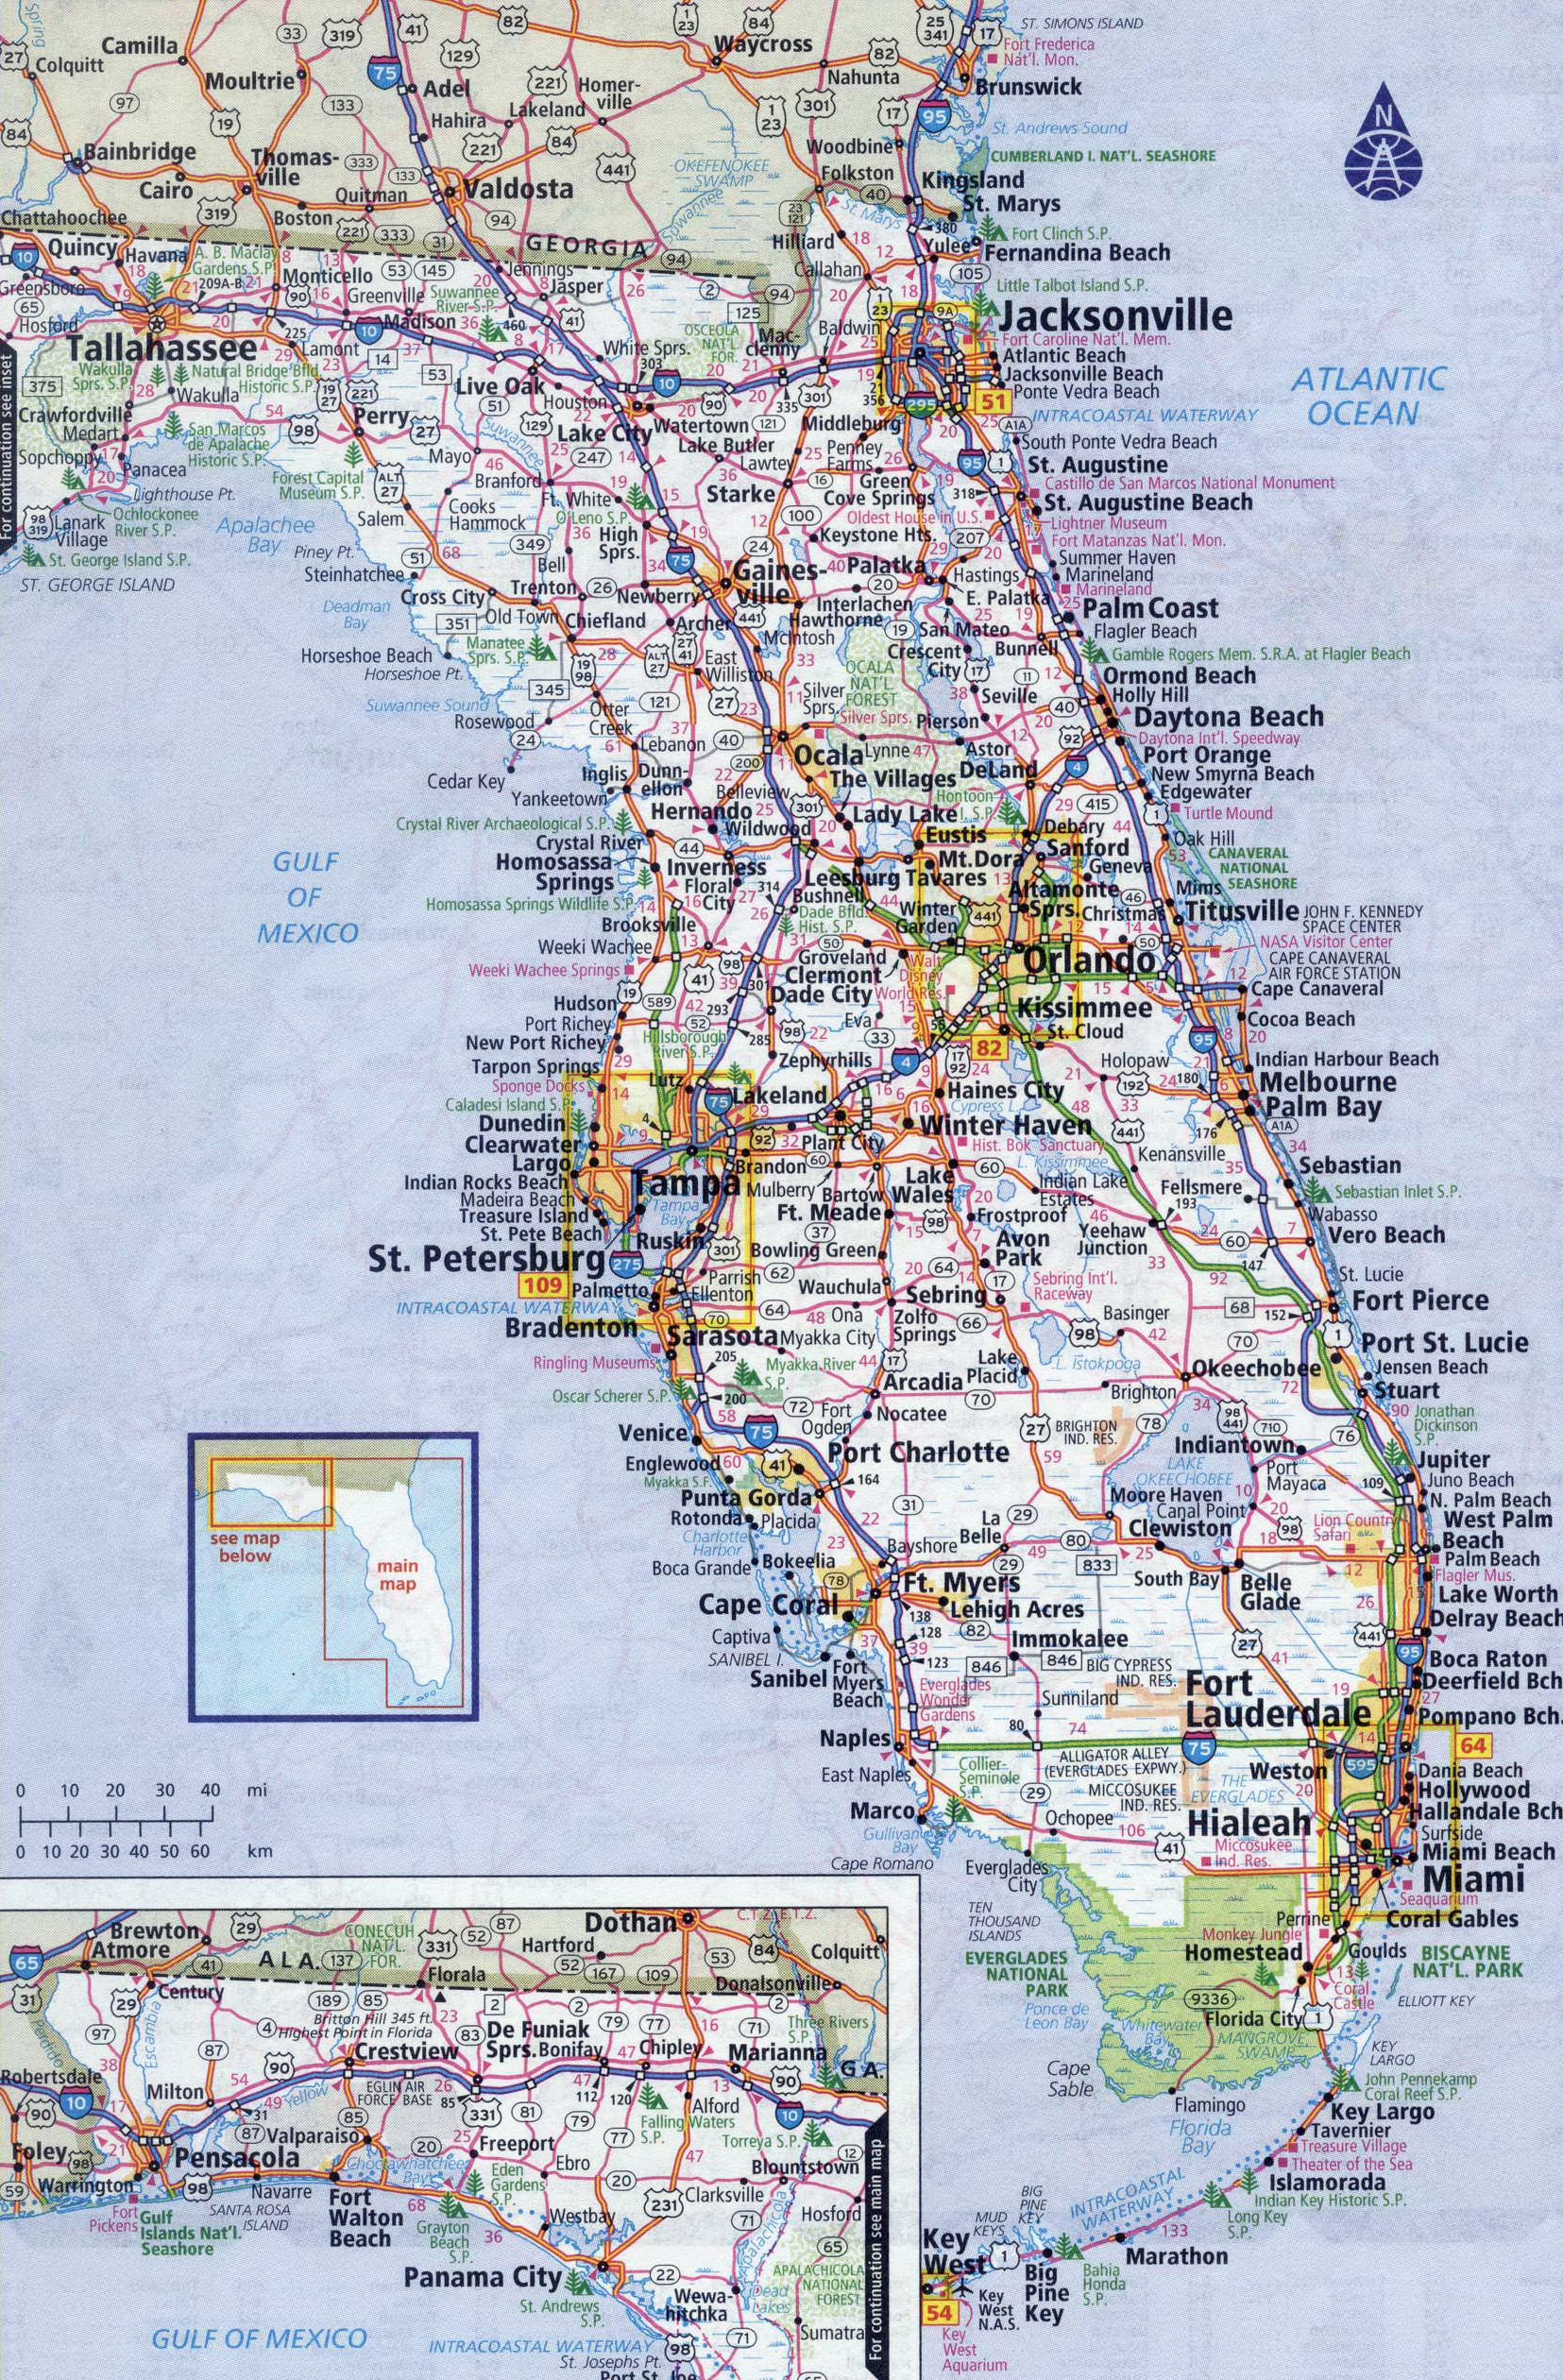 Highway Map Of Florida Large Detailed Roads And Highways Map Of Florida State With All